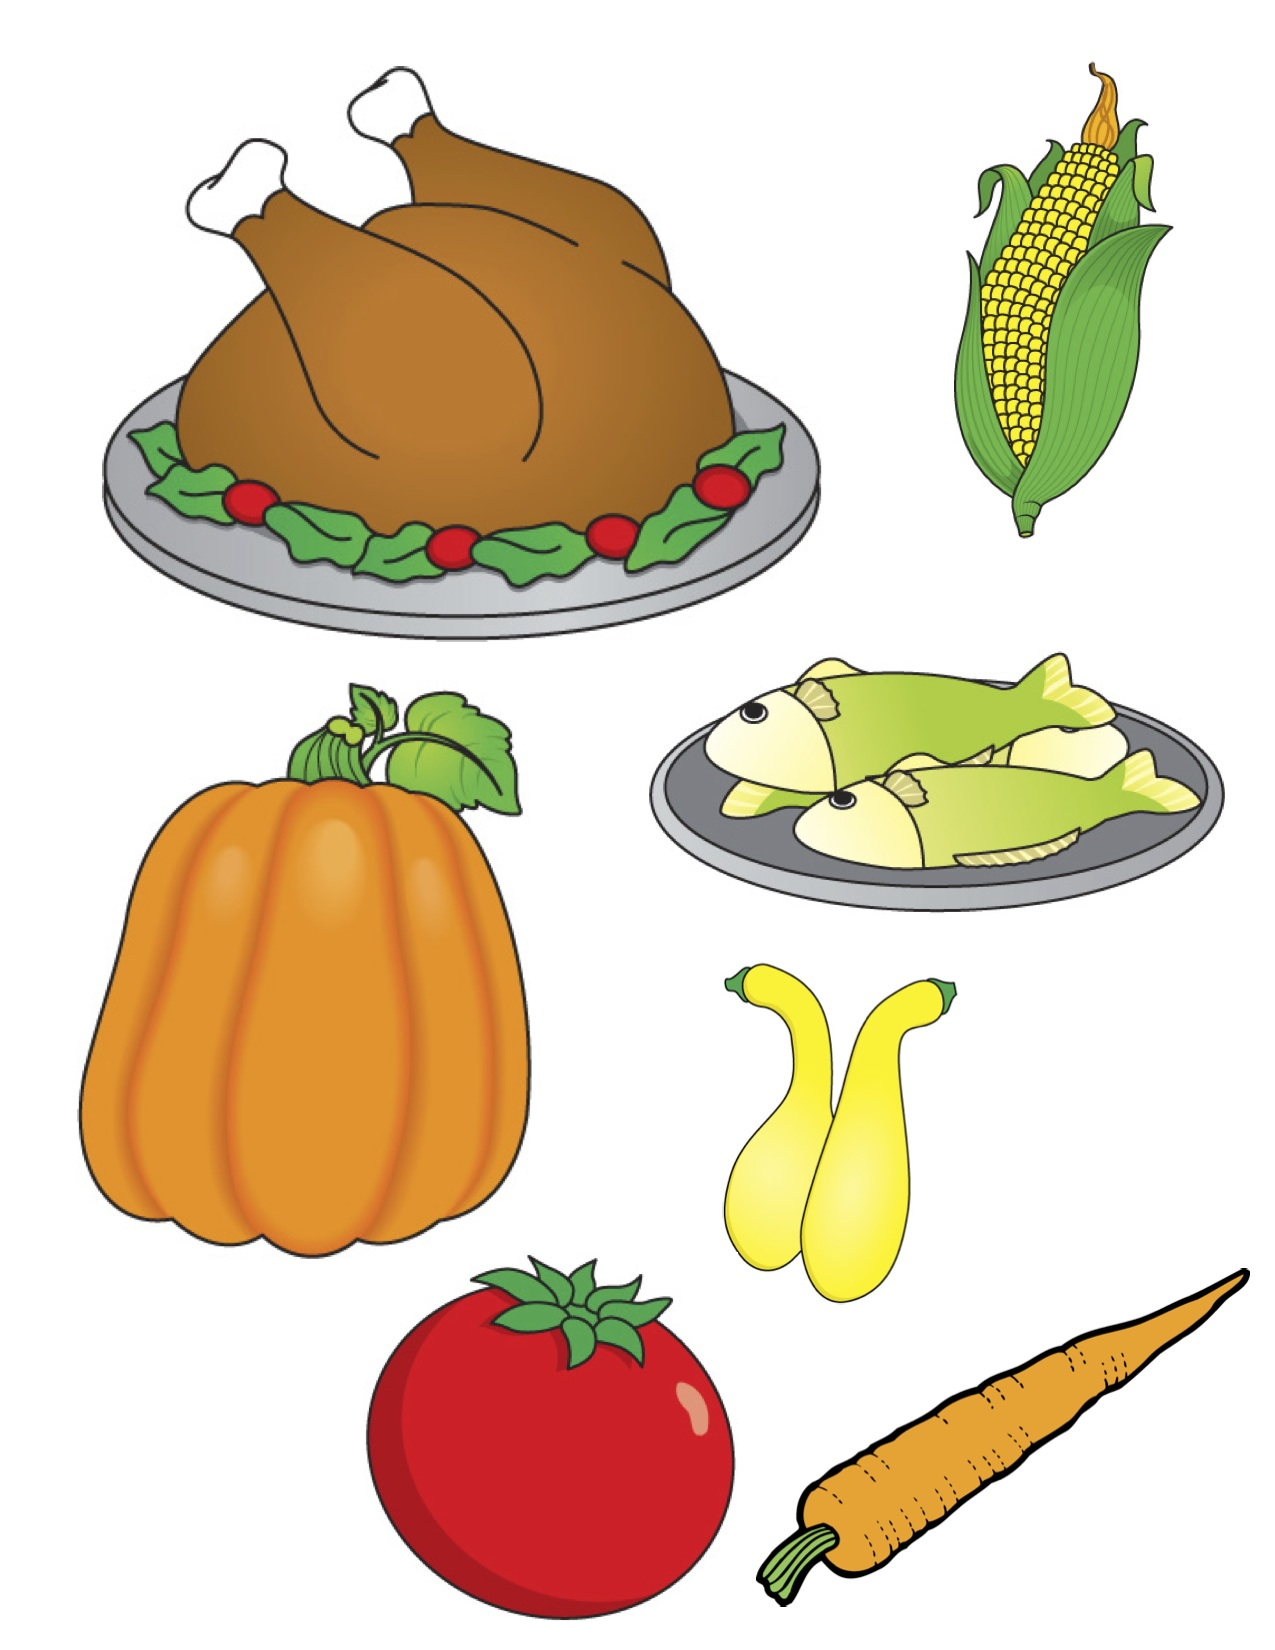 Thanksgiving Dinner Clip Art; Clipart th-Thanksgiving Dinner Clip Art; Clipart thanksgiving food ...-12